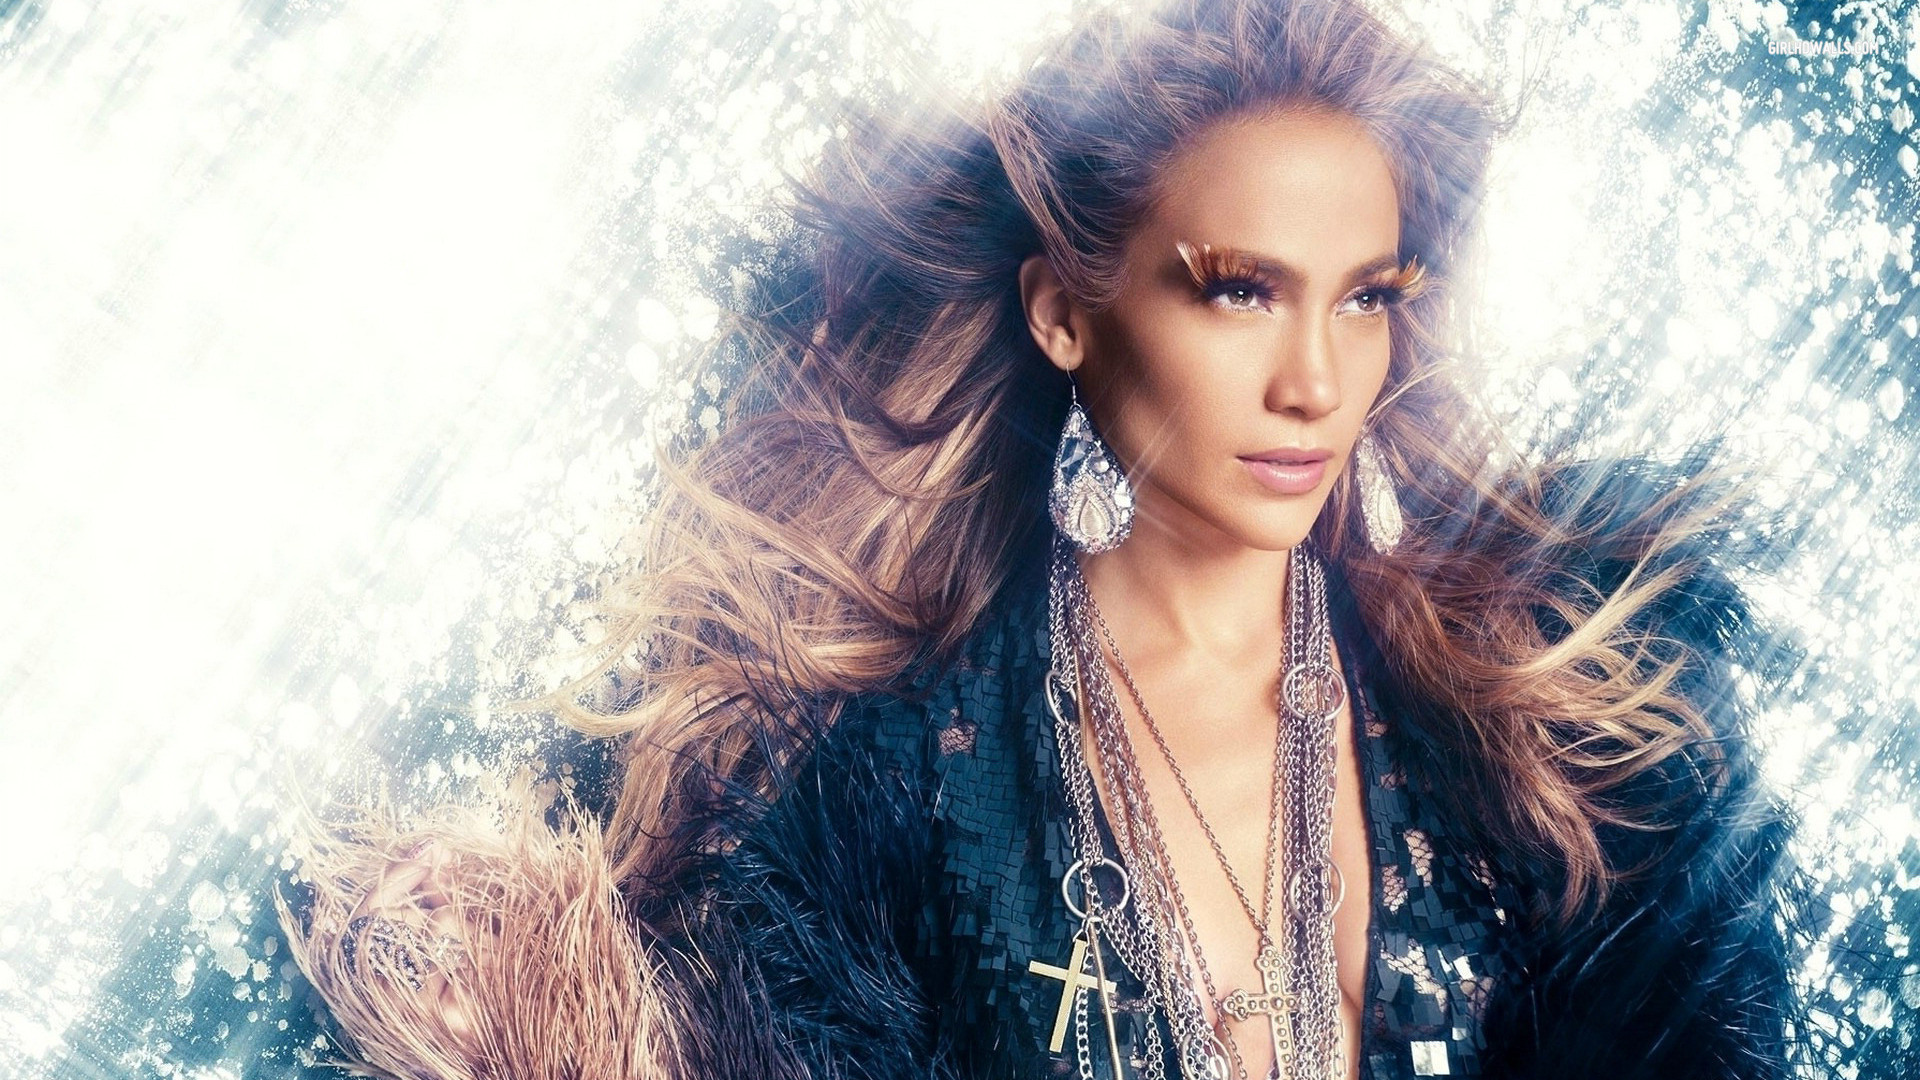 1920x1080 undefined Jennifer Lopez Pics Wallpapers (55 Wallpapers) | Adorable  Wallpapers | Desktop | Pinterest | Jennifer lopez wallpaper and Wallpaper